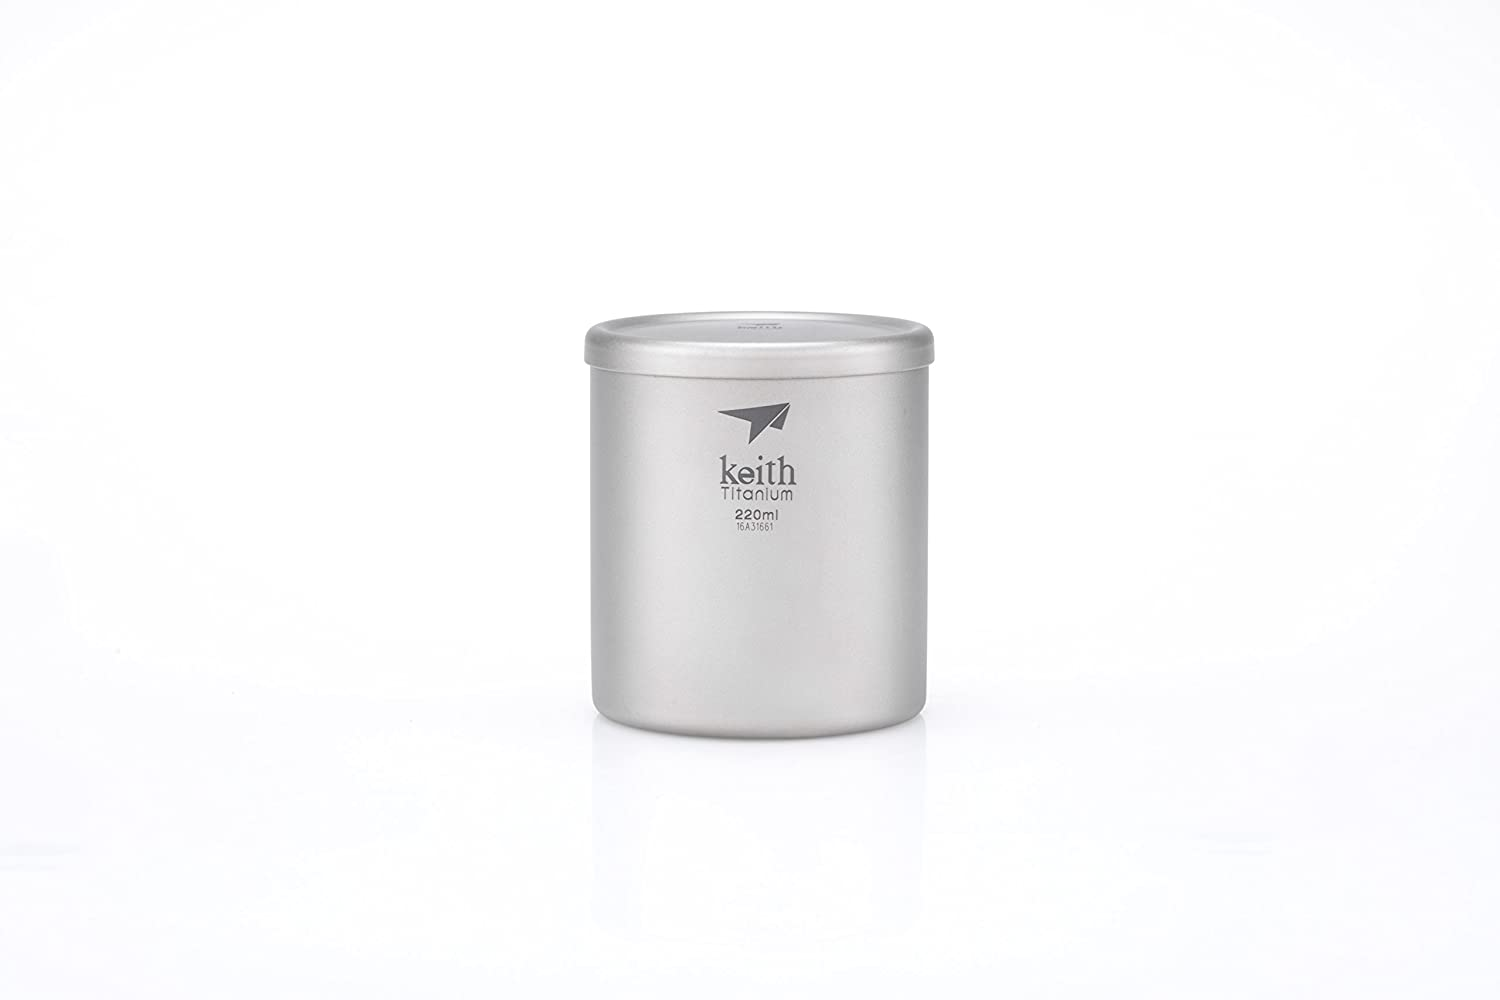 Keithチタンti3301 double-wall Mug with Lid – 7.4 FL OZ B01M652BV2